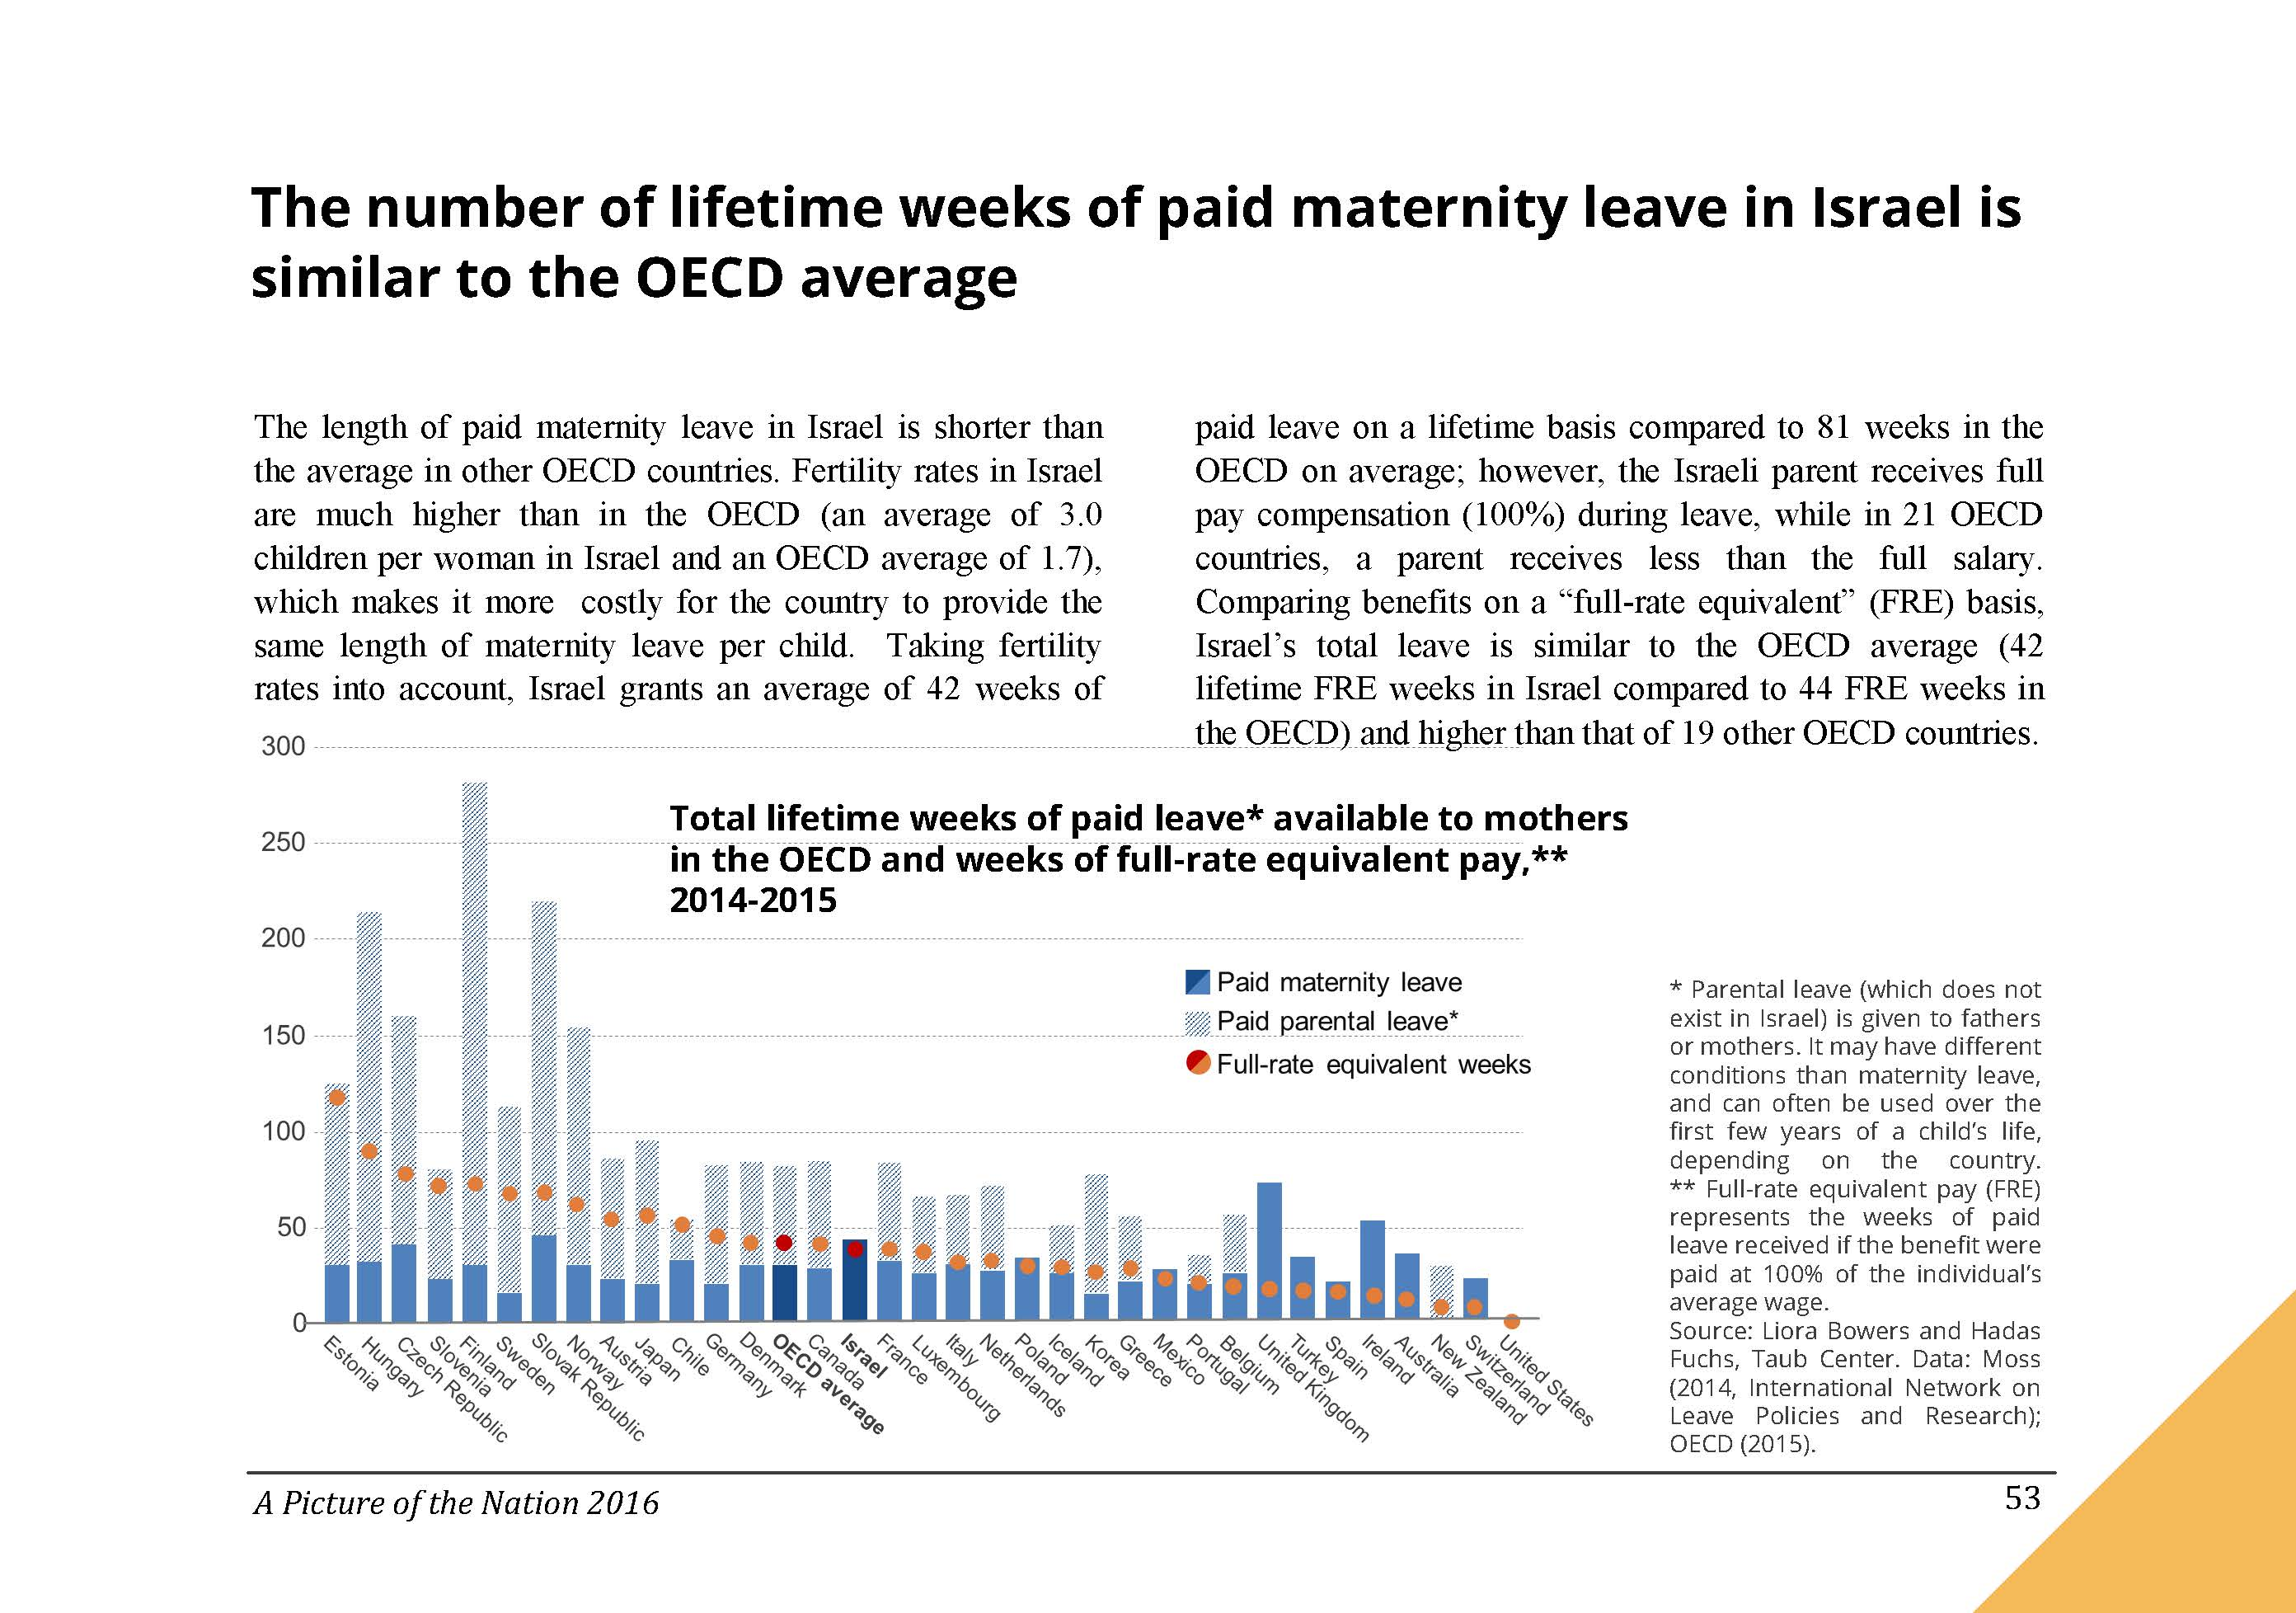 The number of lifetime weeks of paid maternity leave in Israel is similar to the OECD average